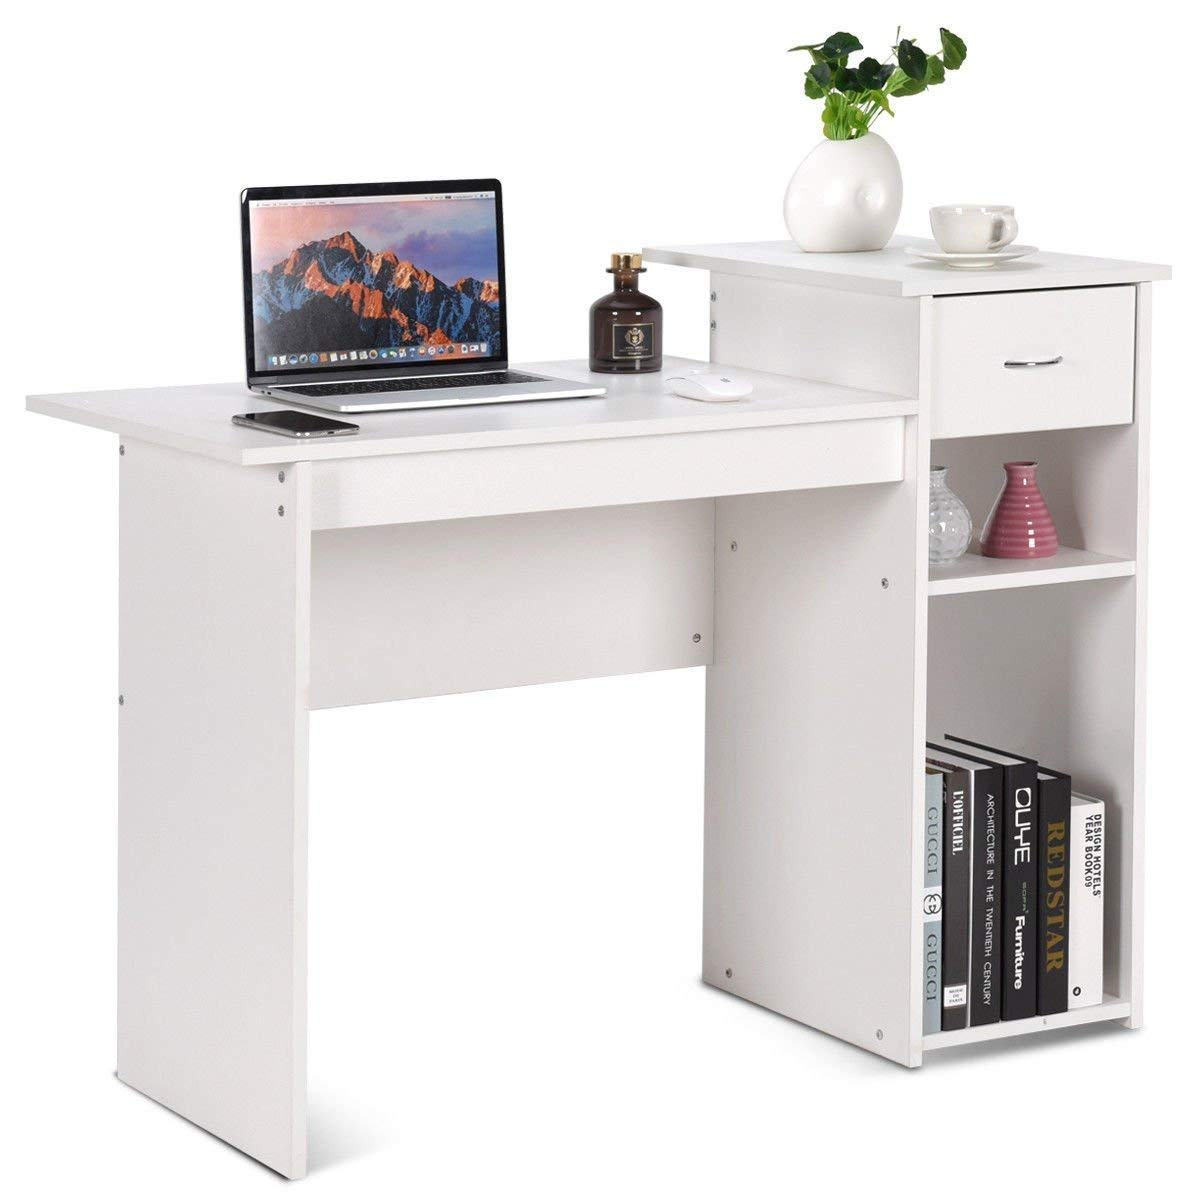 Tangkula Computer Desk Wooden PC Laptop Home Office Modern Simple Style Wood Study Workstation Writing Table Wooden Furniture Set (White)